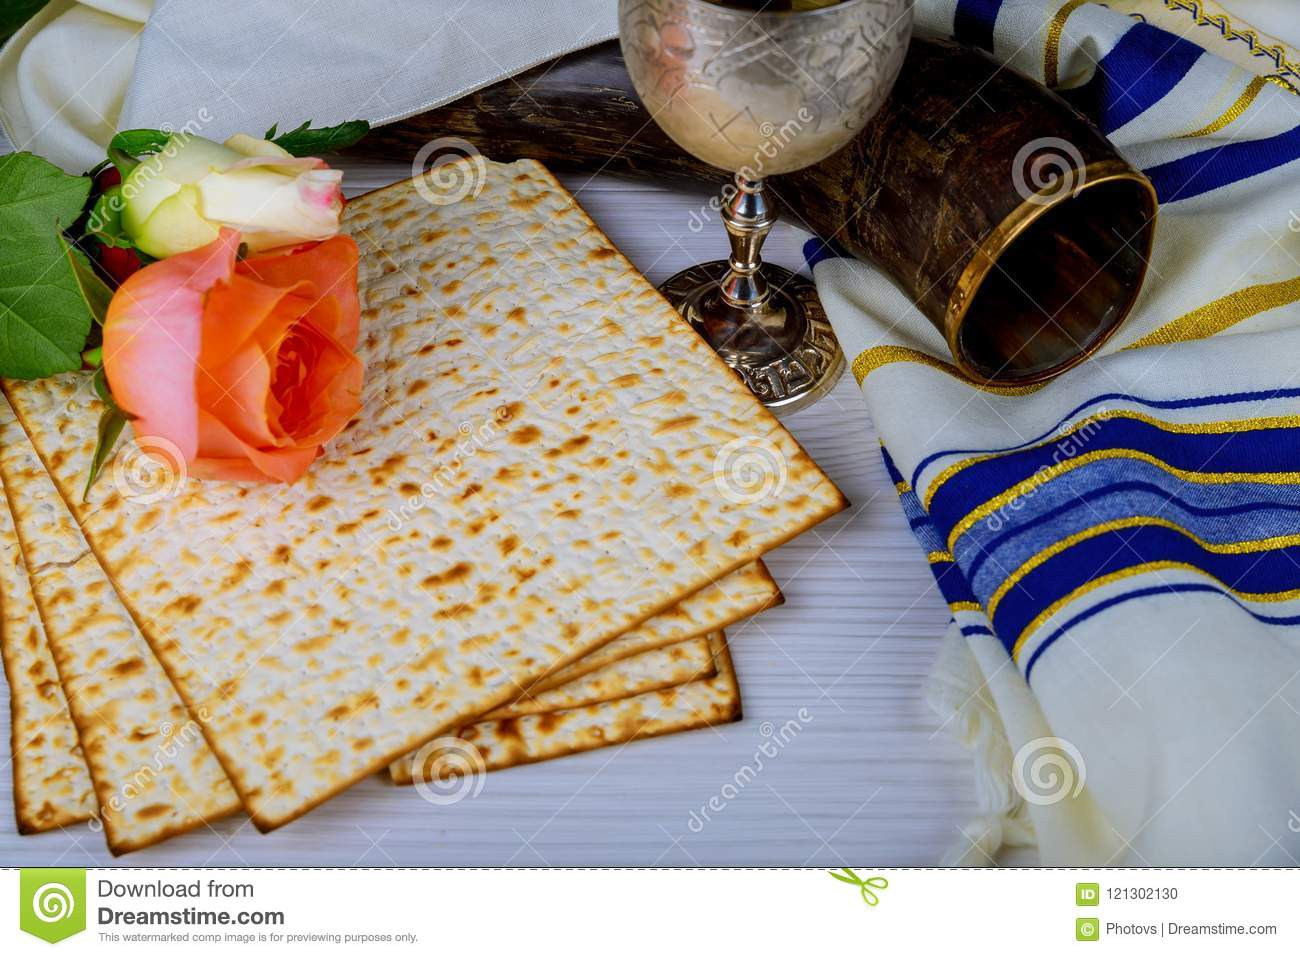 Matzo For Jewish Holiday Passover, An Of Jewish Cuisine Of